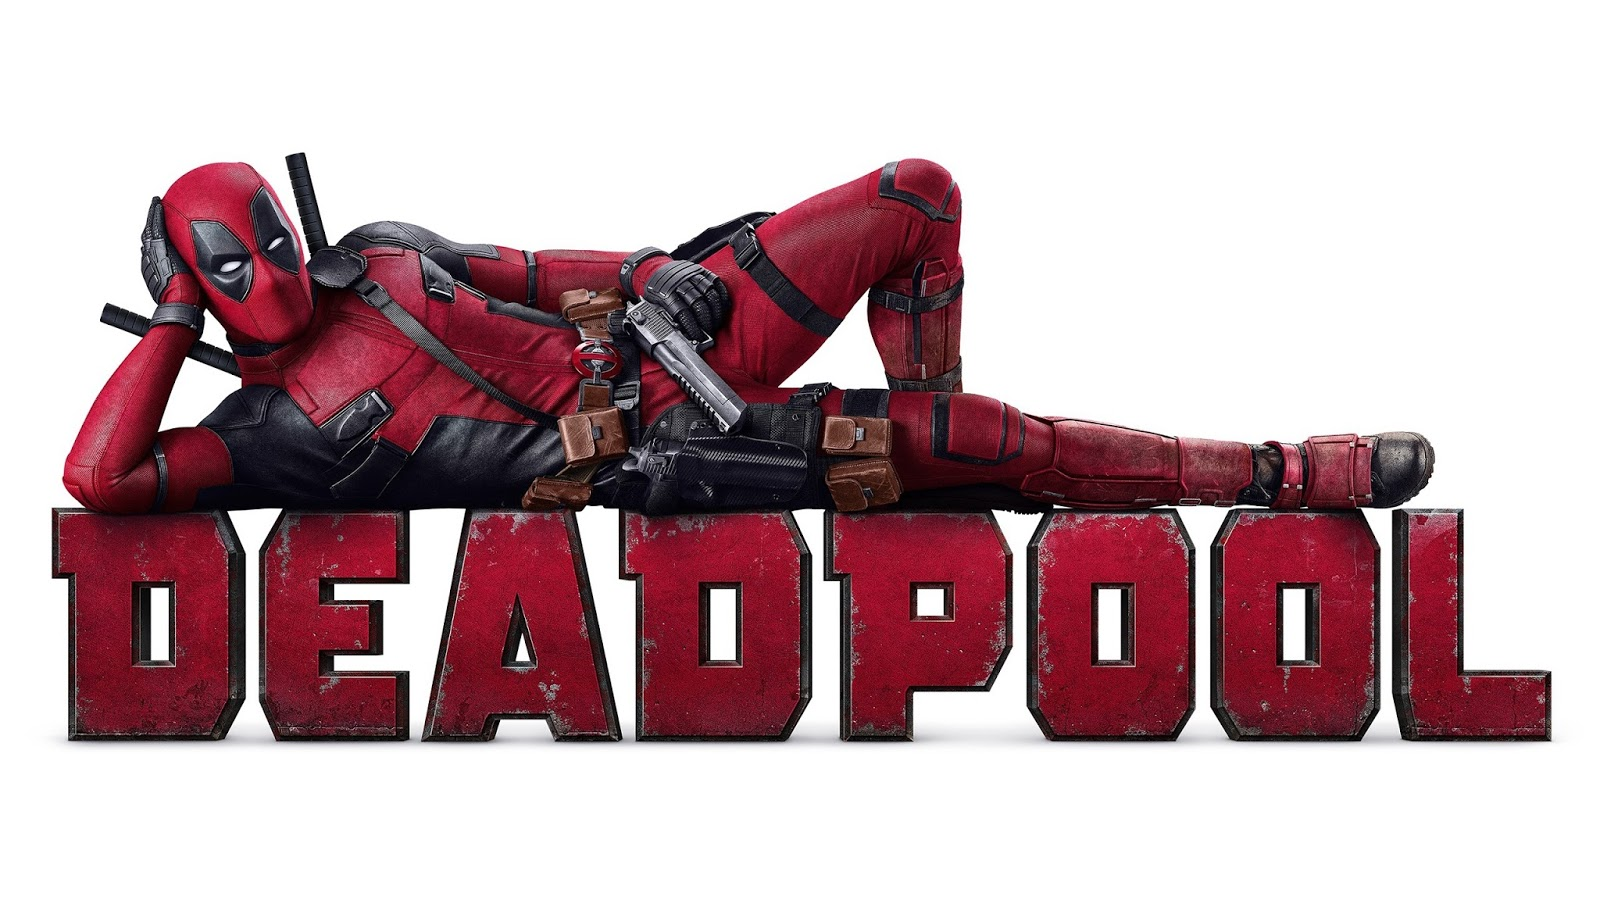 Download Free Hd Wallpapers Of Deadpool Movie 2016